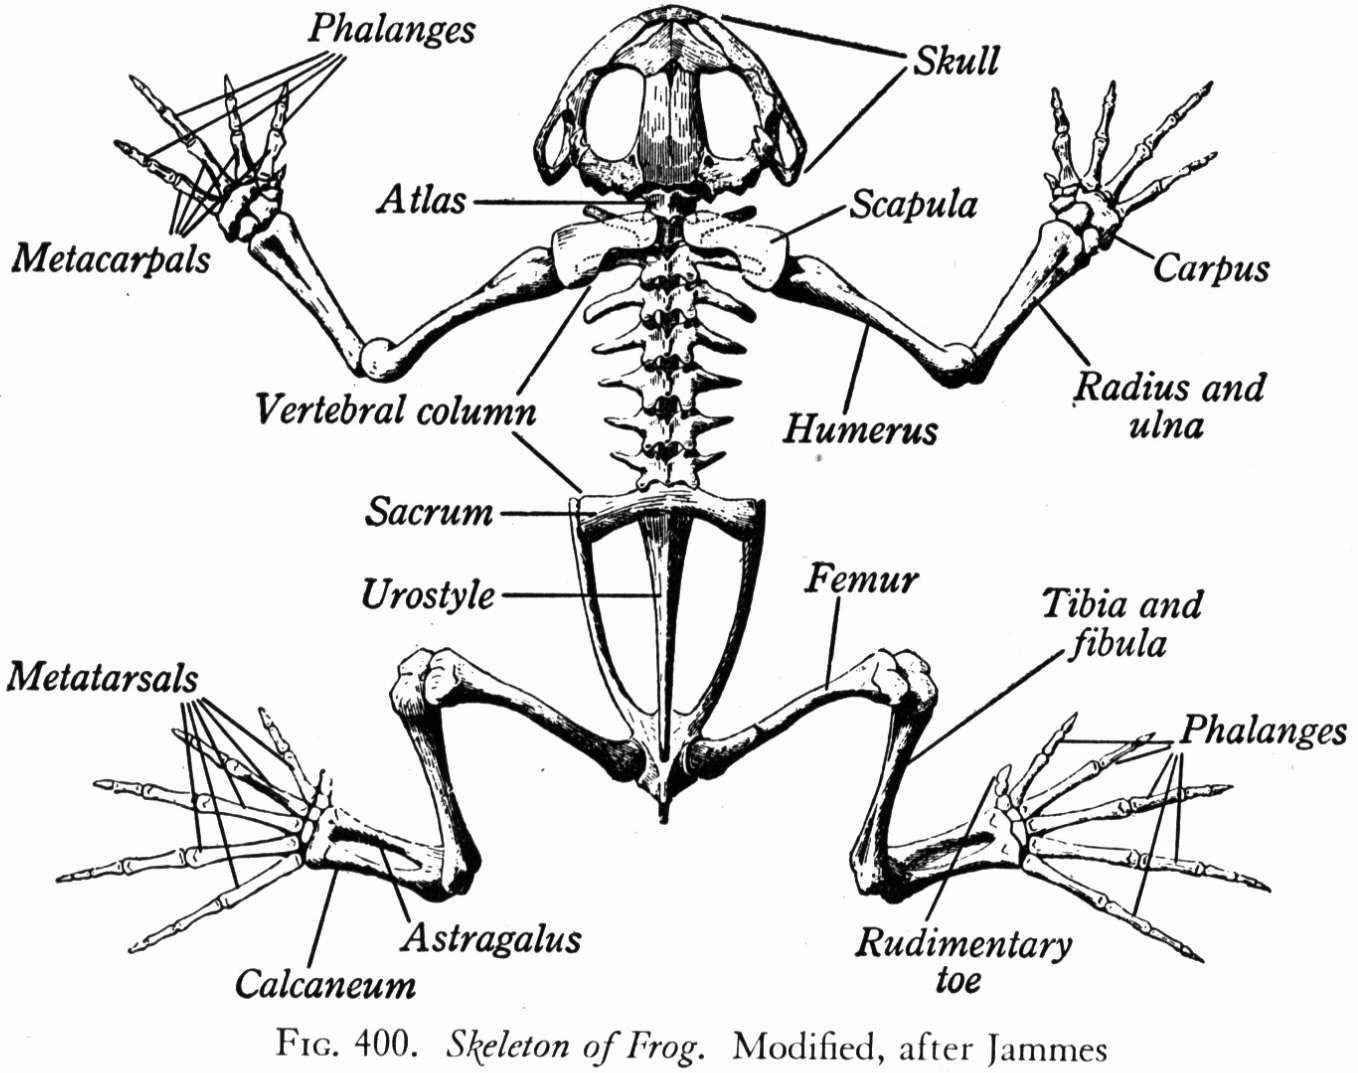 Frog skeleton google search tattoos pinterest frogs and a diagram of the skeleton of a frog looking at how a frogs bone structure is made up and what bones contribute to everyday life ccuart Image collections